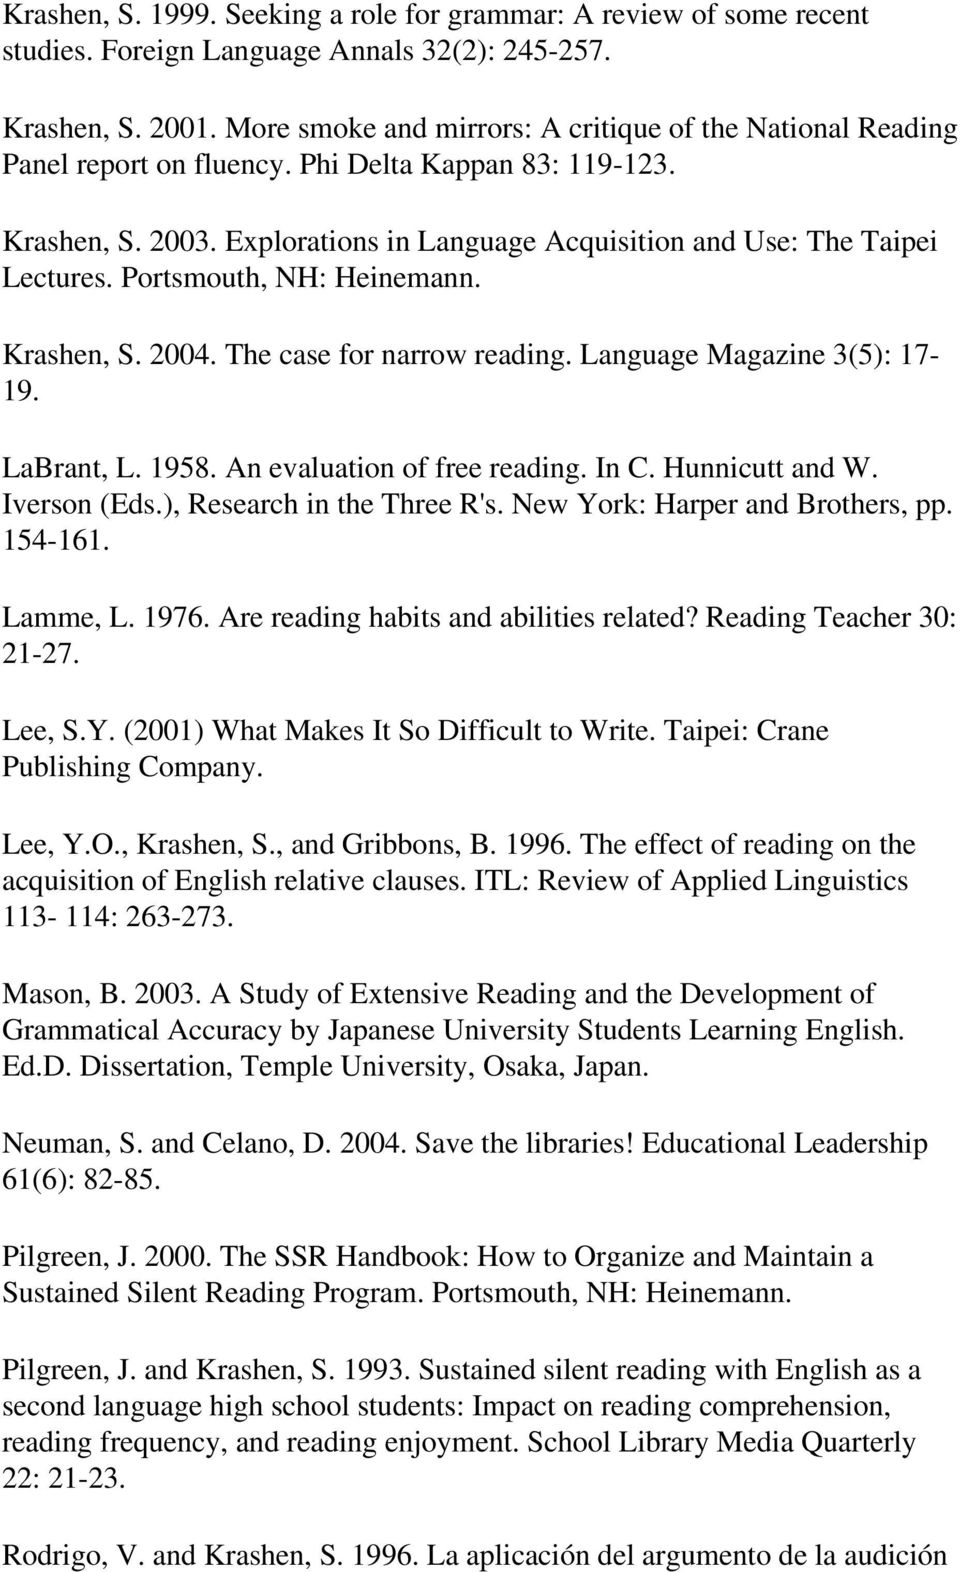 Portsmouth, NH: Heinemann. Krashen, S. 2004. The case for narrow reading. Language Magazine 3(5): 17-19. LaBrant, L. 1958. An evaluation of free reading. In C. Hunnicutt and W. Iverson (Eds.